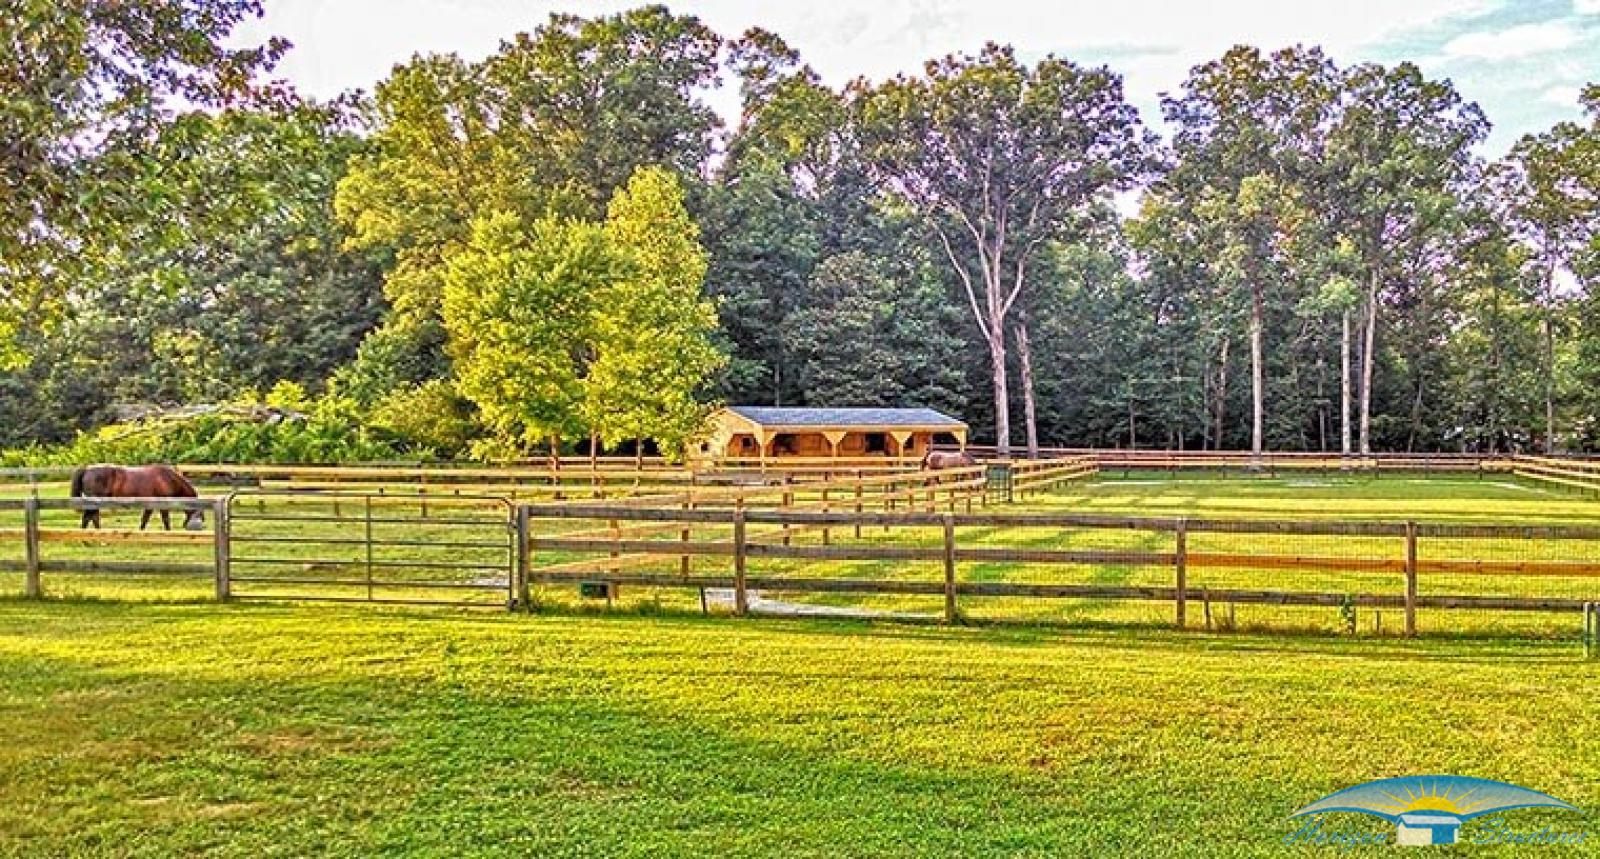 horse-barns-shed-row-in-12x36-with-10-foot-overhang-wide-shot_0_0